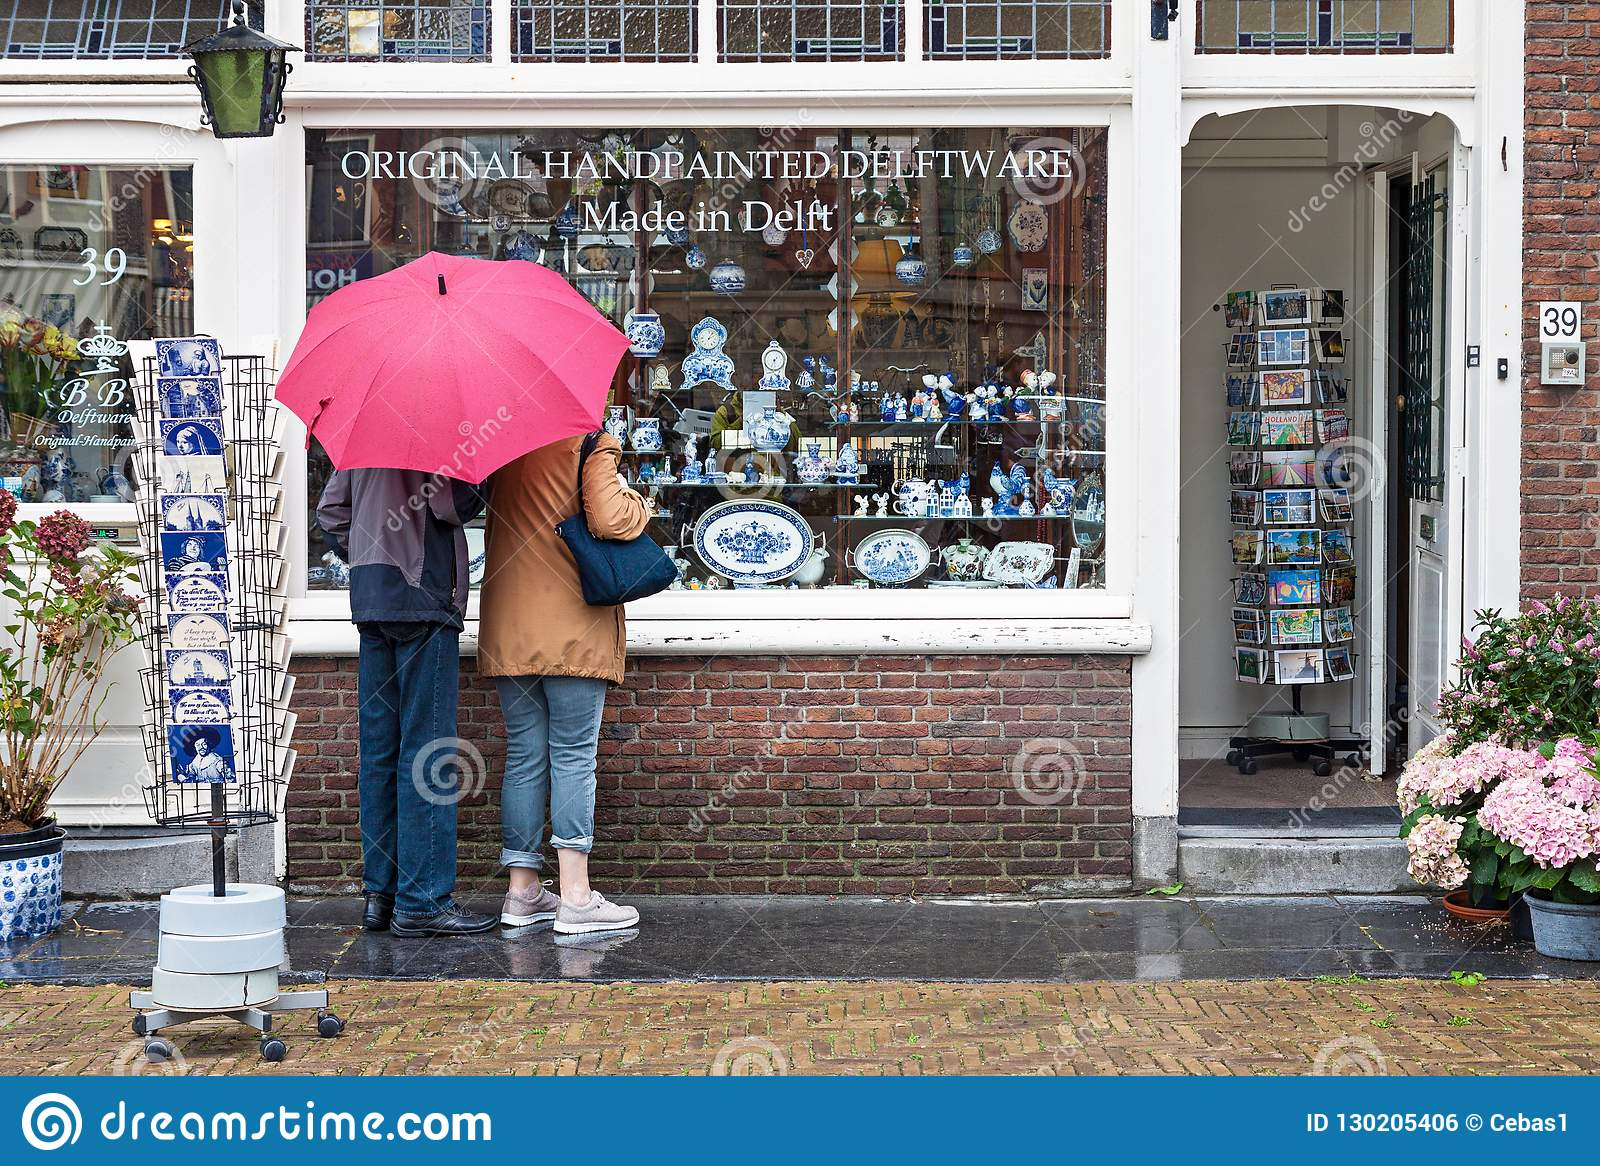 Delft H&m Window Display Of Traditional Dutch Handpainted Pottery Shop In